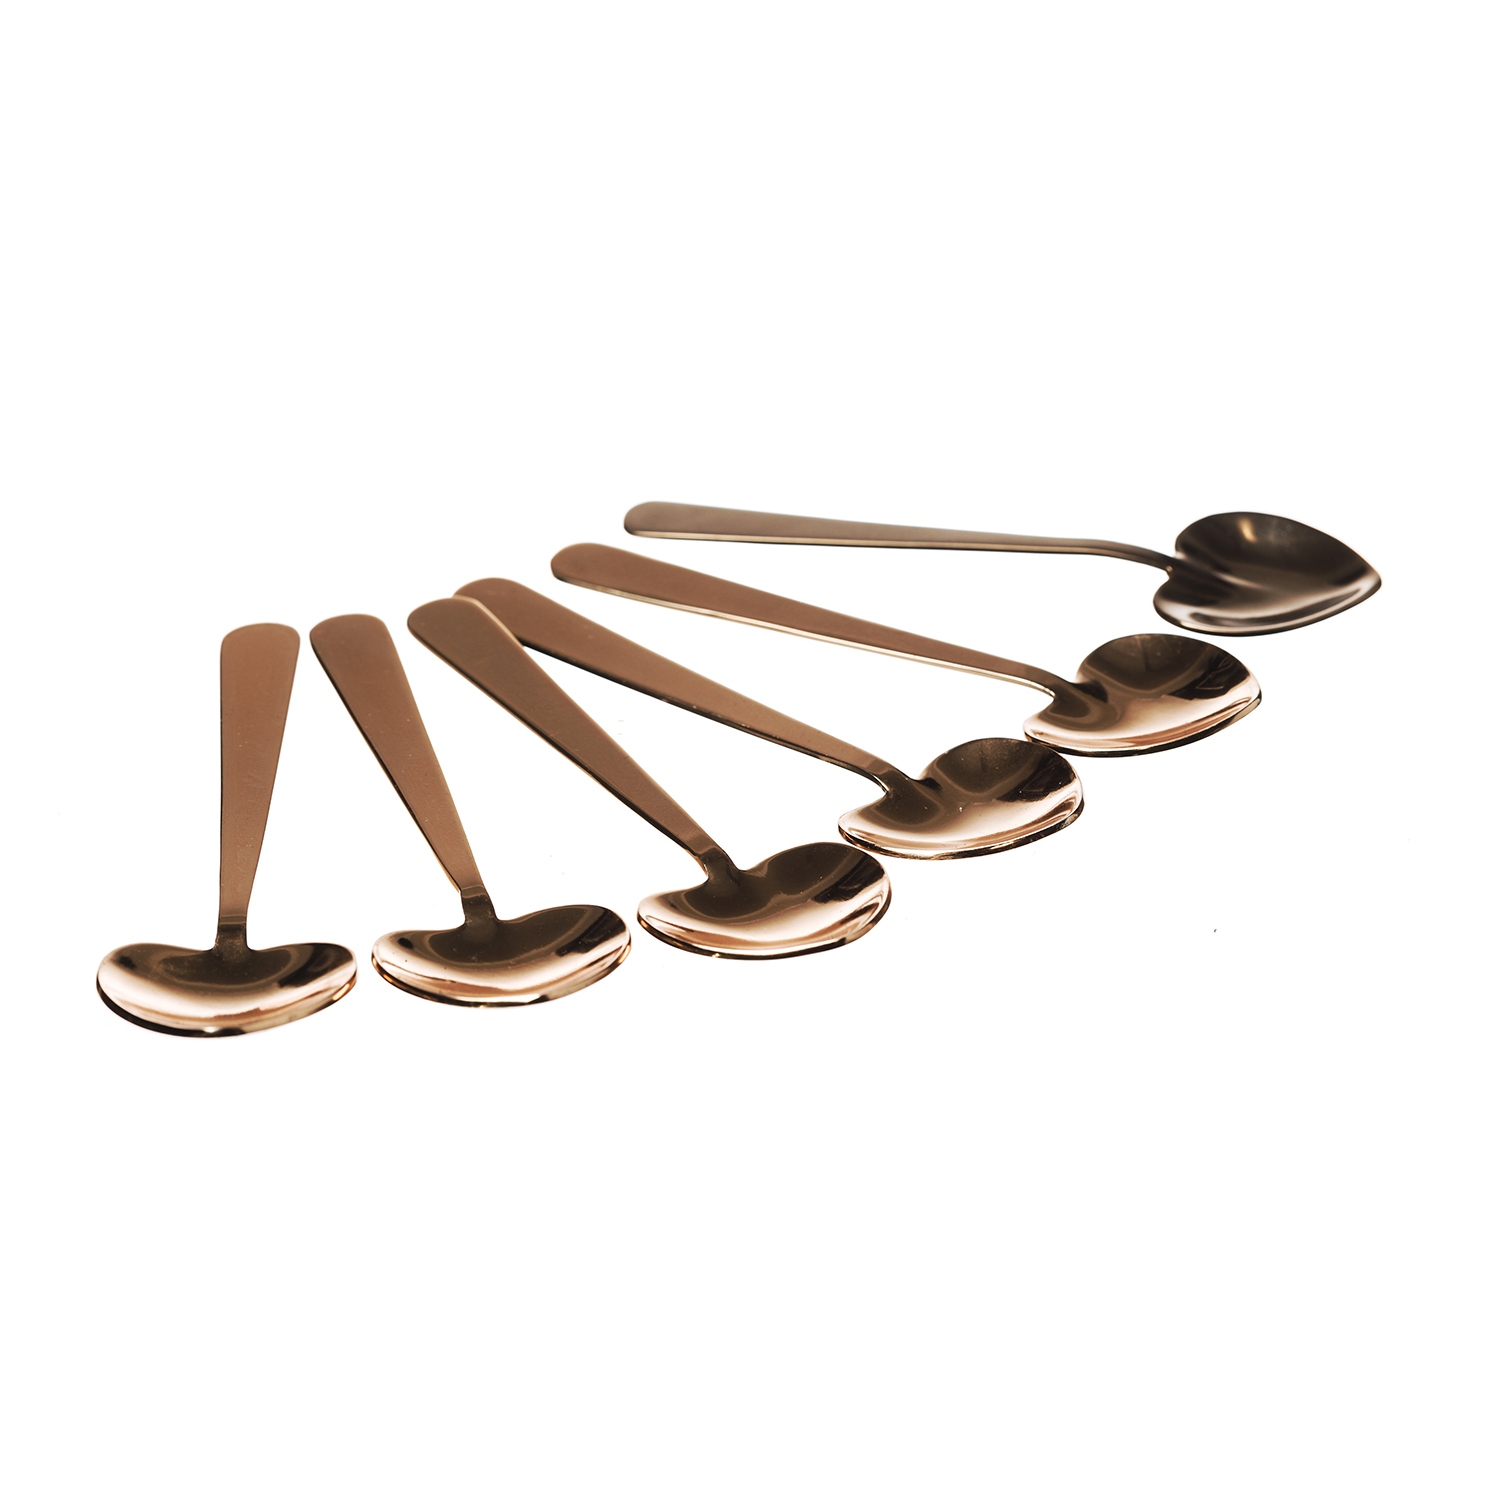 The Just Slate Company – Set of 6 Copper Heart Spoons in Presentation Box